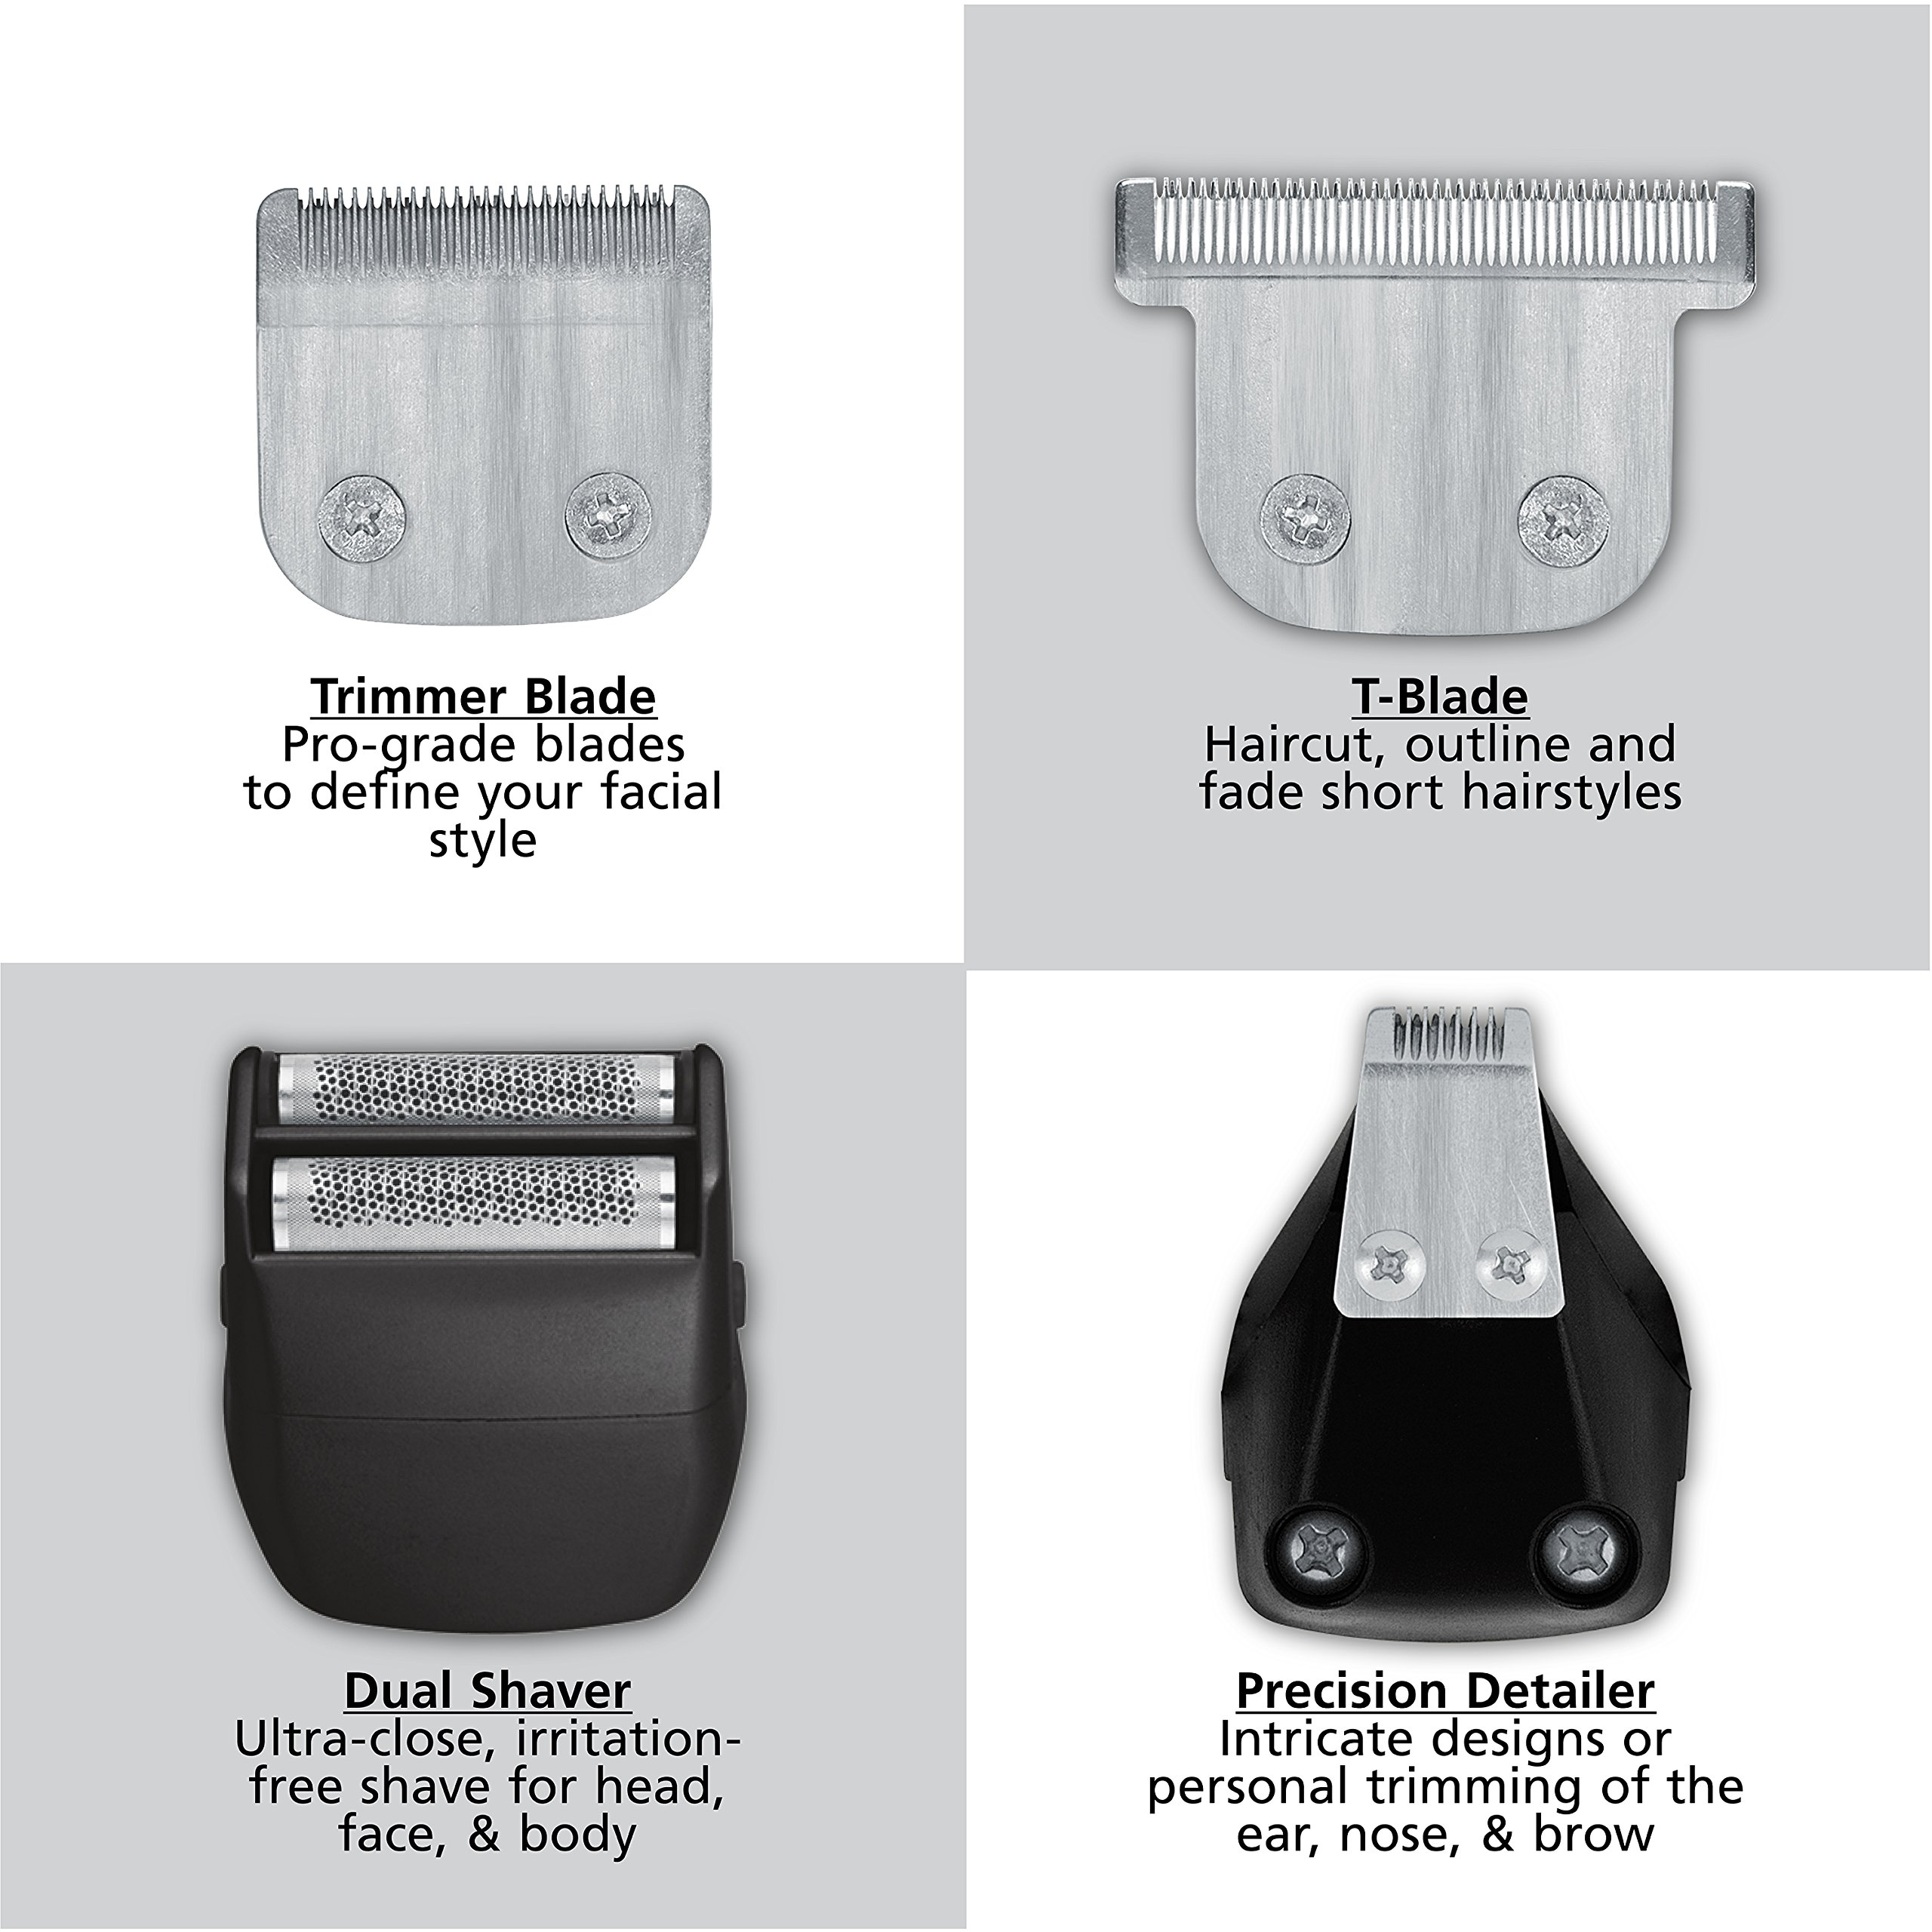 Wahl Beard Trimmer, Lithium Ion All-in-One Men's Grooming Kit with Rechargeable Beard Trimmers, Hair Clippers, and Electric Shavers by the Brand Used by Professionals #9854-600 by Wahl (Image #3)